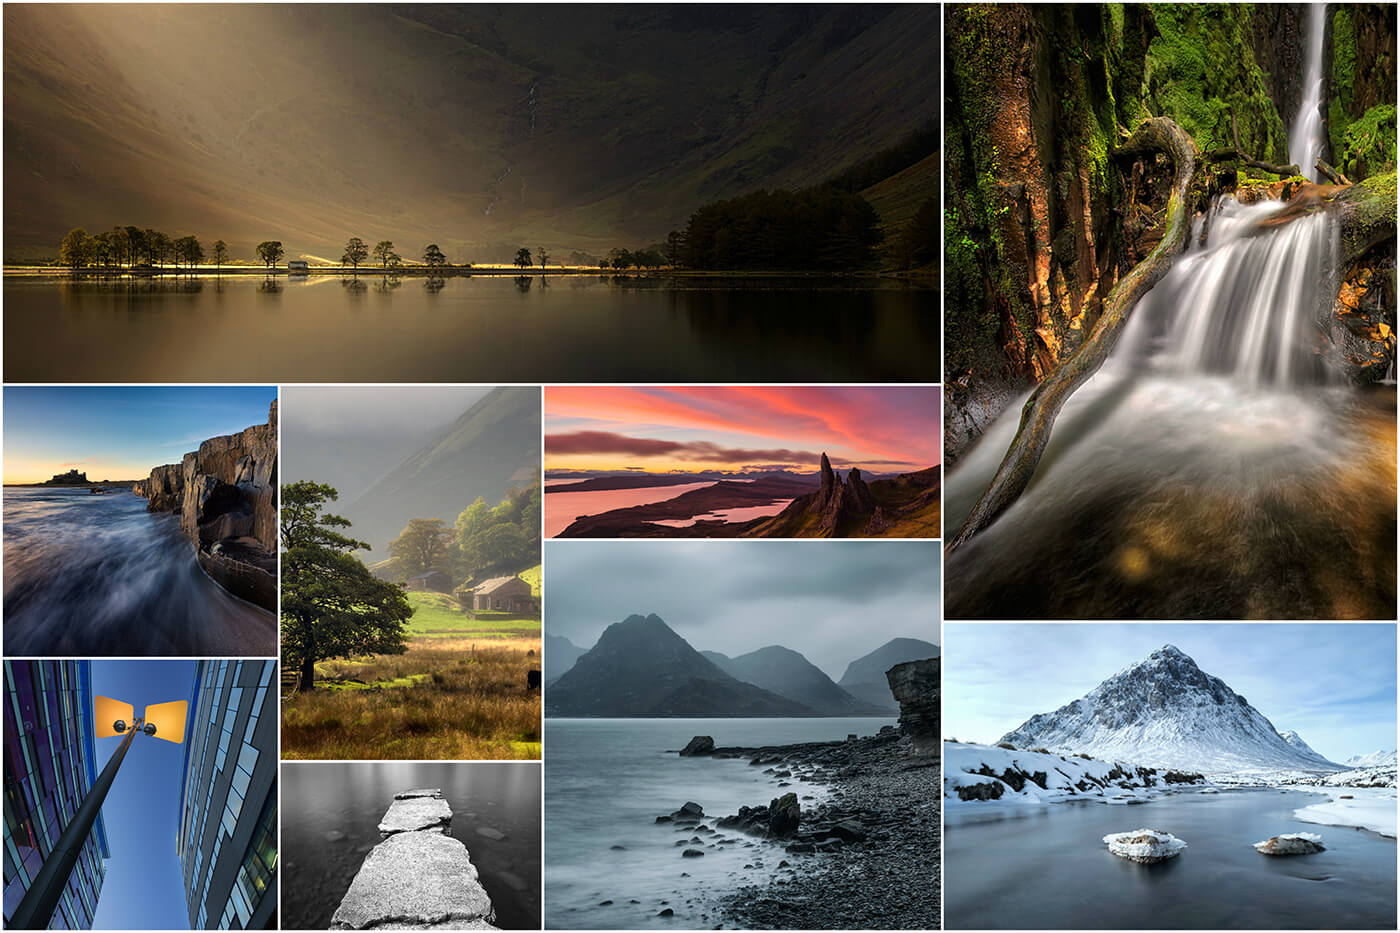 My 2015 Top Ten Images - Melvin Nicholson Photography